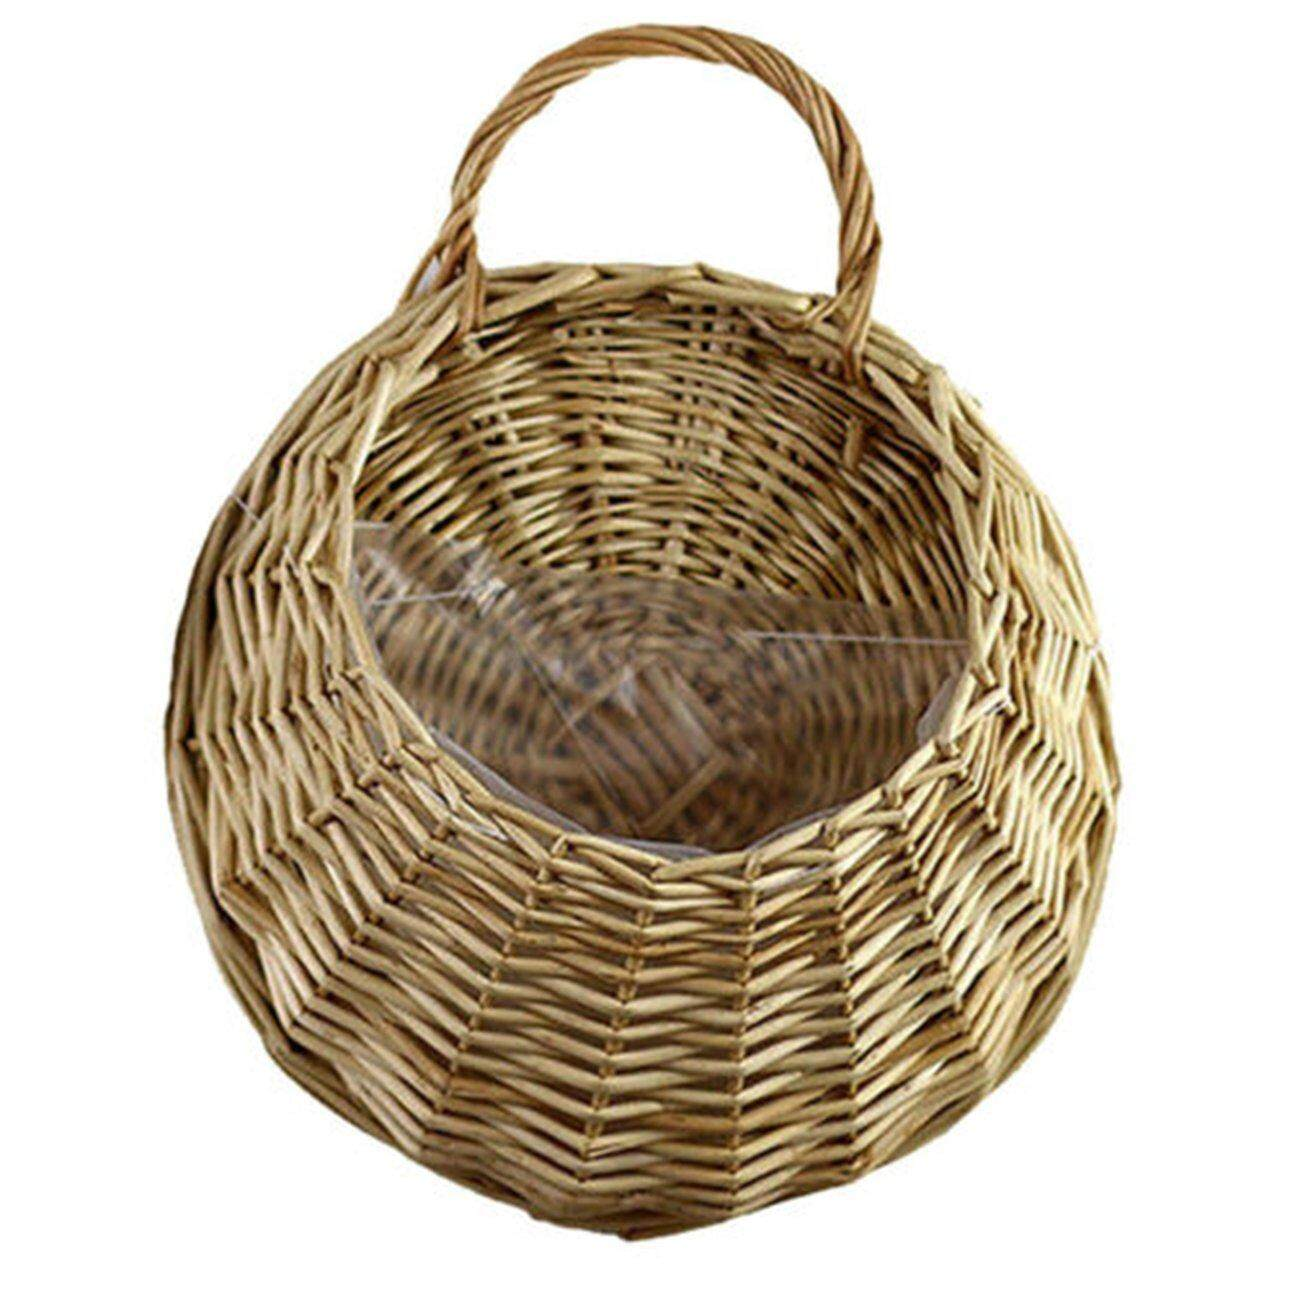 Hot Sales Nostalgic Vintage Wicker Rattan Flower Basket Wall Hanging Wall Decoration